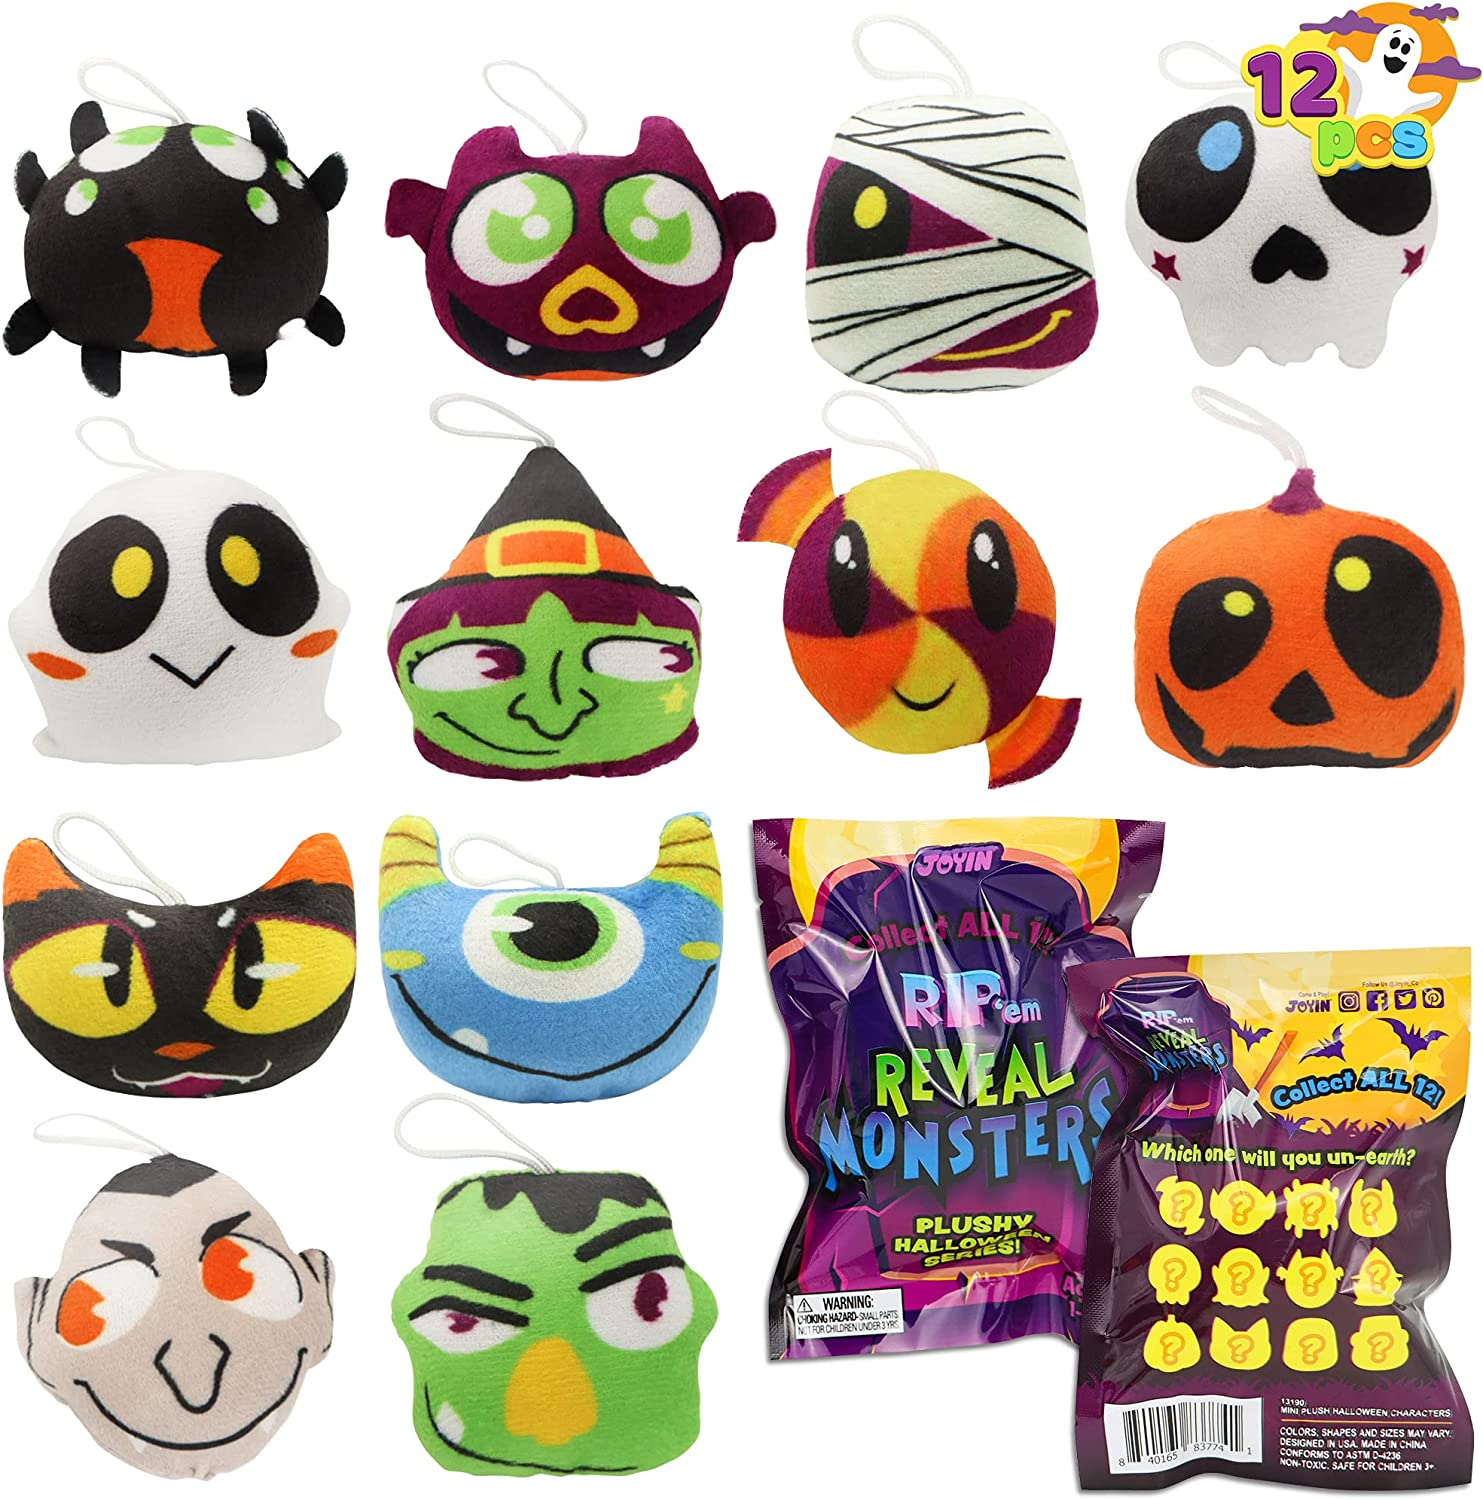 JOYIN 12 pcs Halloween Mini Plush Toy in Blind Bags, Halloween Mystery Toy Surprise Bag, Plush Toy Assortments for Kids Halloween Party Favors, Trick or Treat Gift Exchange, Halloween Goodie Fillers